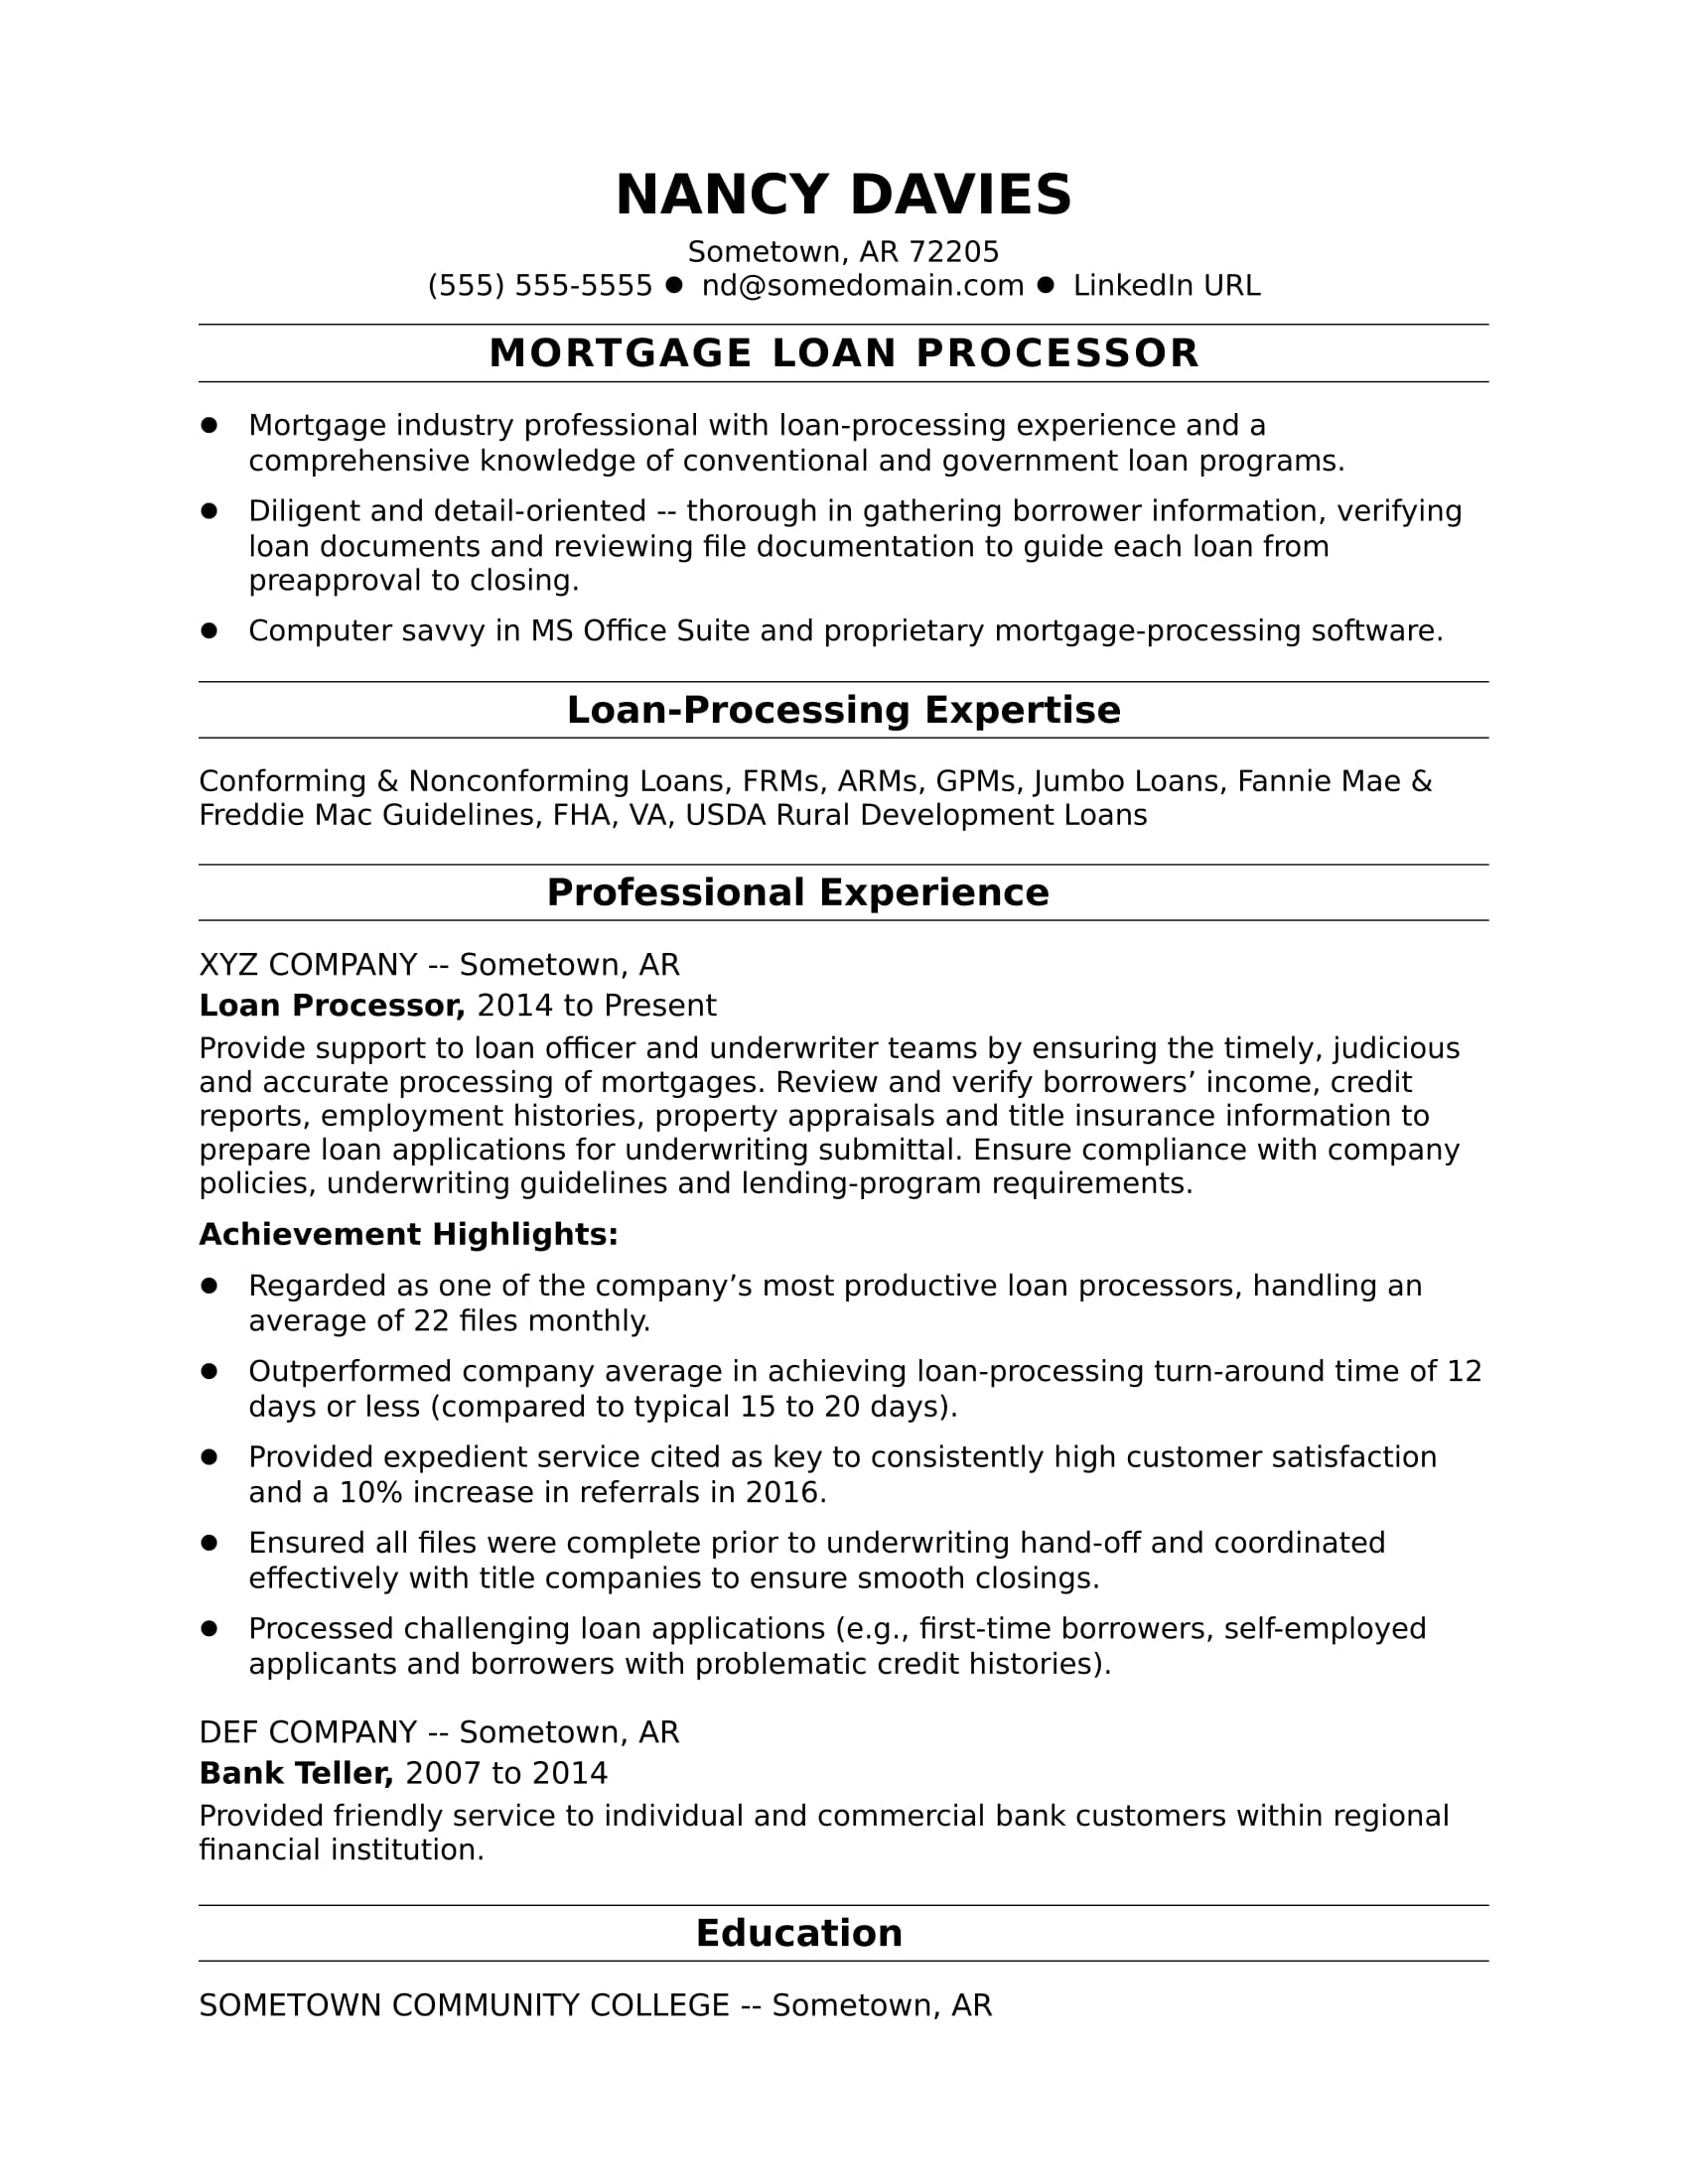 Mortgage Loan Processor Resume Sample Monster